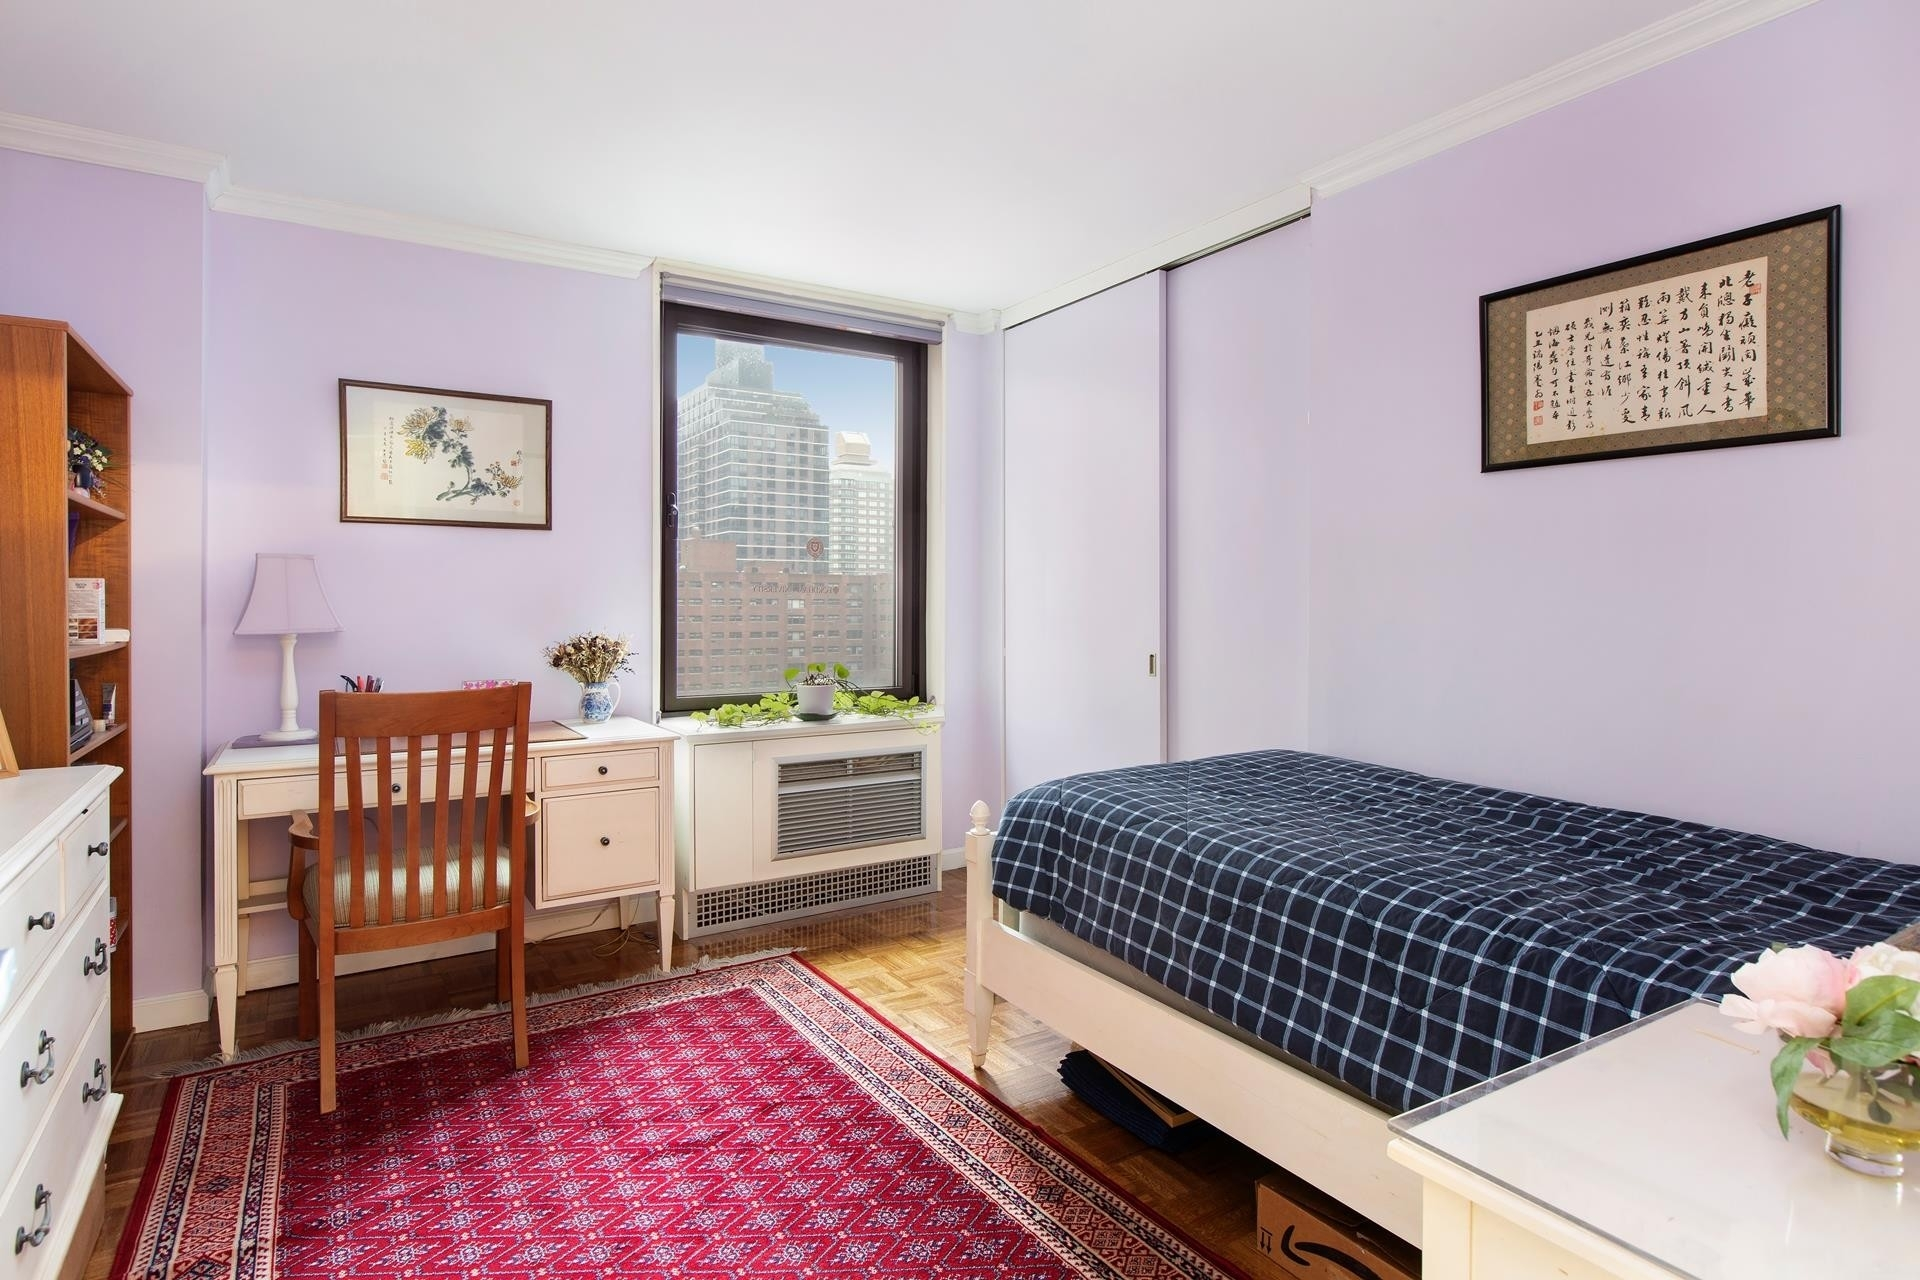 5. Condominiums for Sale at Ruppert Towers 2, 1619 THIRD AVE , 11A Yorkville, New York, NY 10128